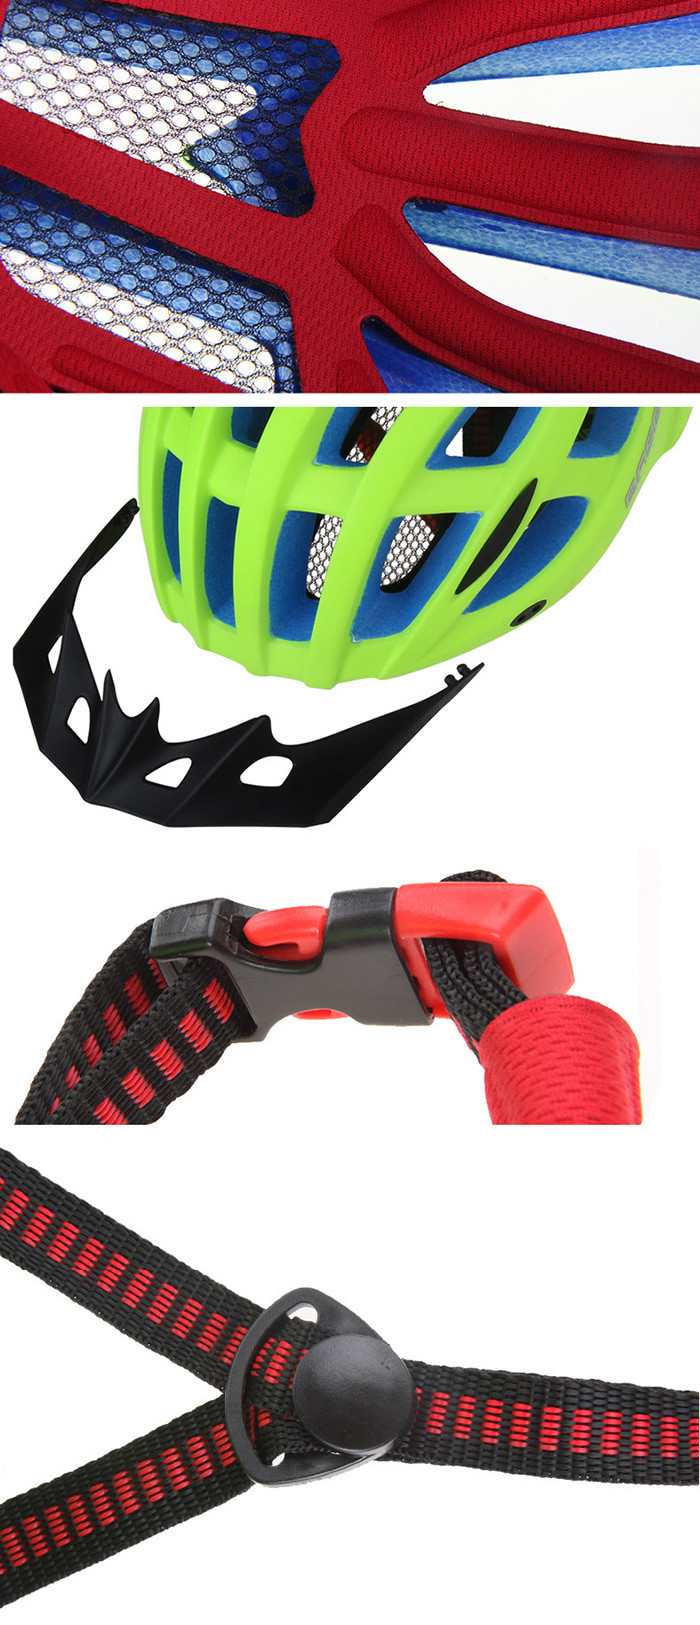 BASECAMP BC-013 Unisex Cycling Helmet Practical Bicycle Riding Accessories